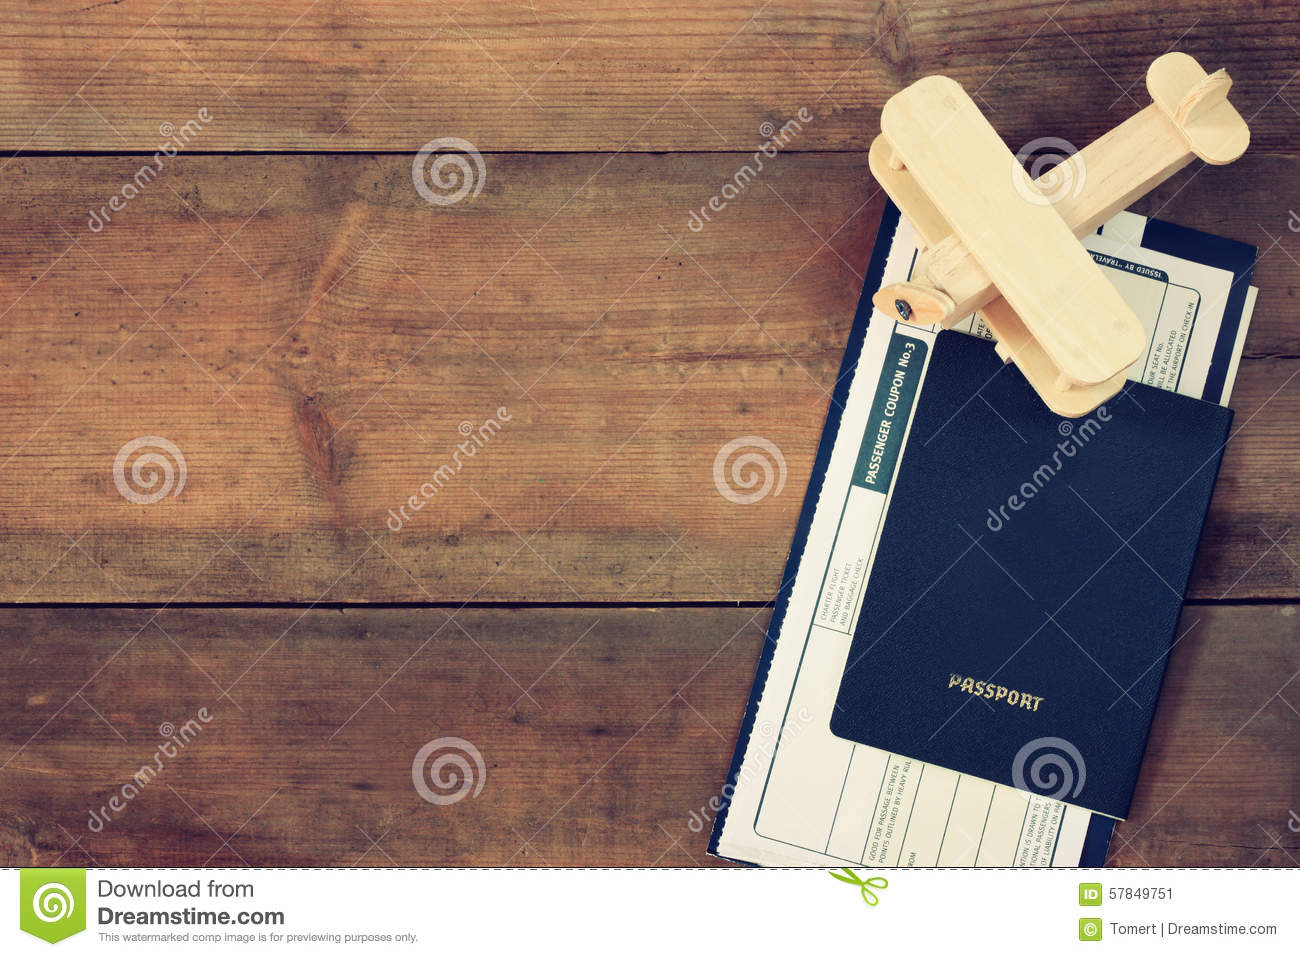 Top view image of flying ticket wooden airplane and passport over wooden table